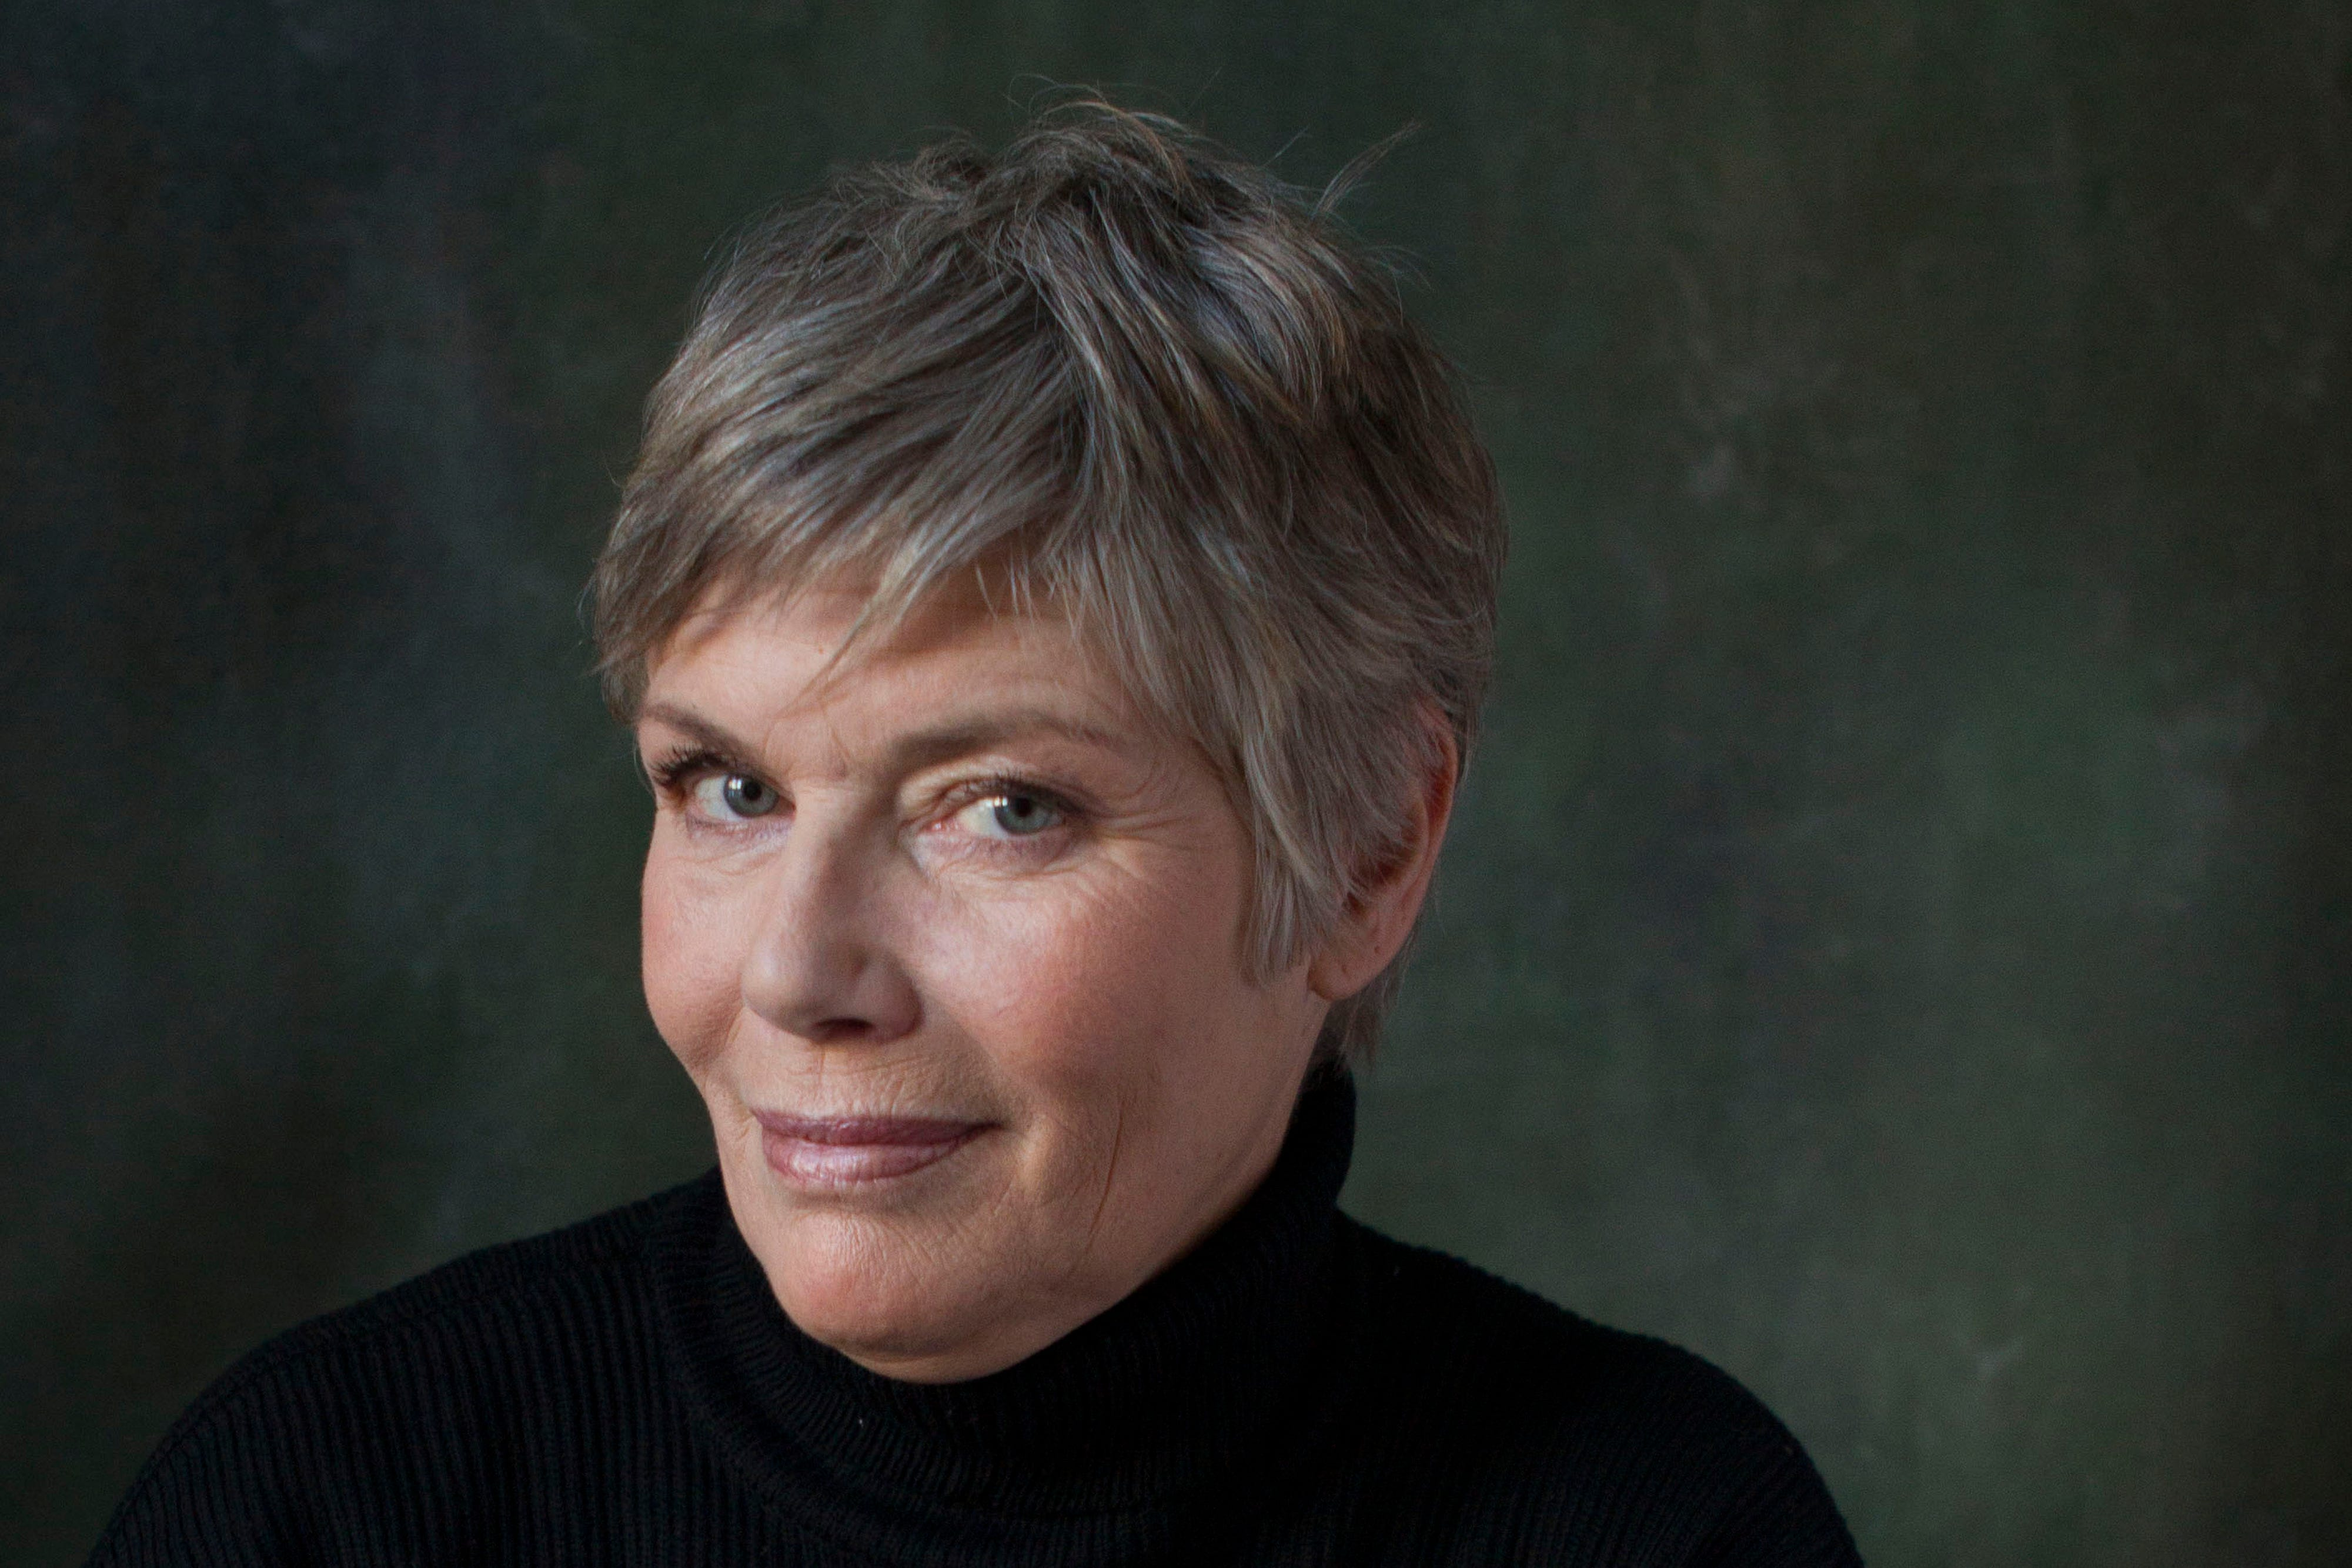 kelly mcgillis gaykelly mcgillis and her wife, kelly mcgillis, kelly mcgillis 2015, kelly mcgillis wiki, kelly mcgillis biography, kelly mcgillis family guy, kelly mcgillis picture, kelly mcgillis net worth, kelly mcgillis character top gun, kelly mcgillis imdb, kelly mcgillis top gun outfits, kelly mcgillis gay